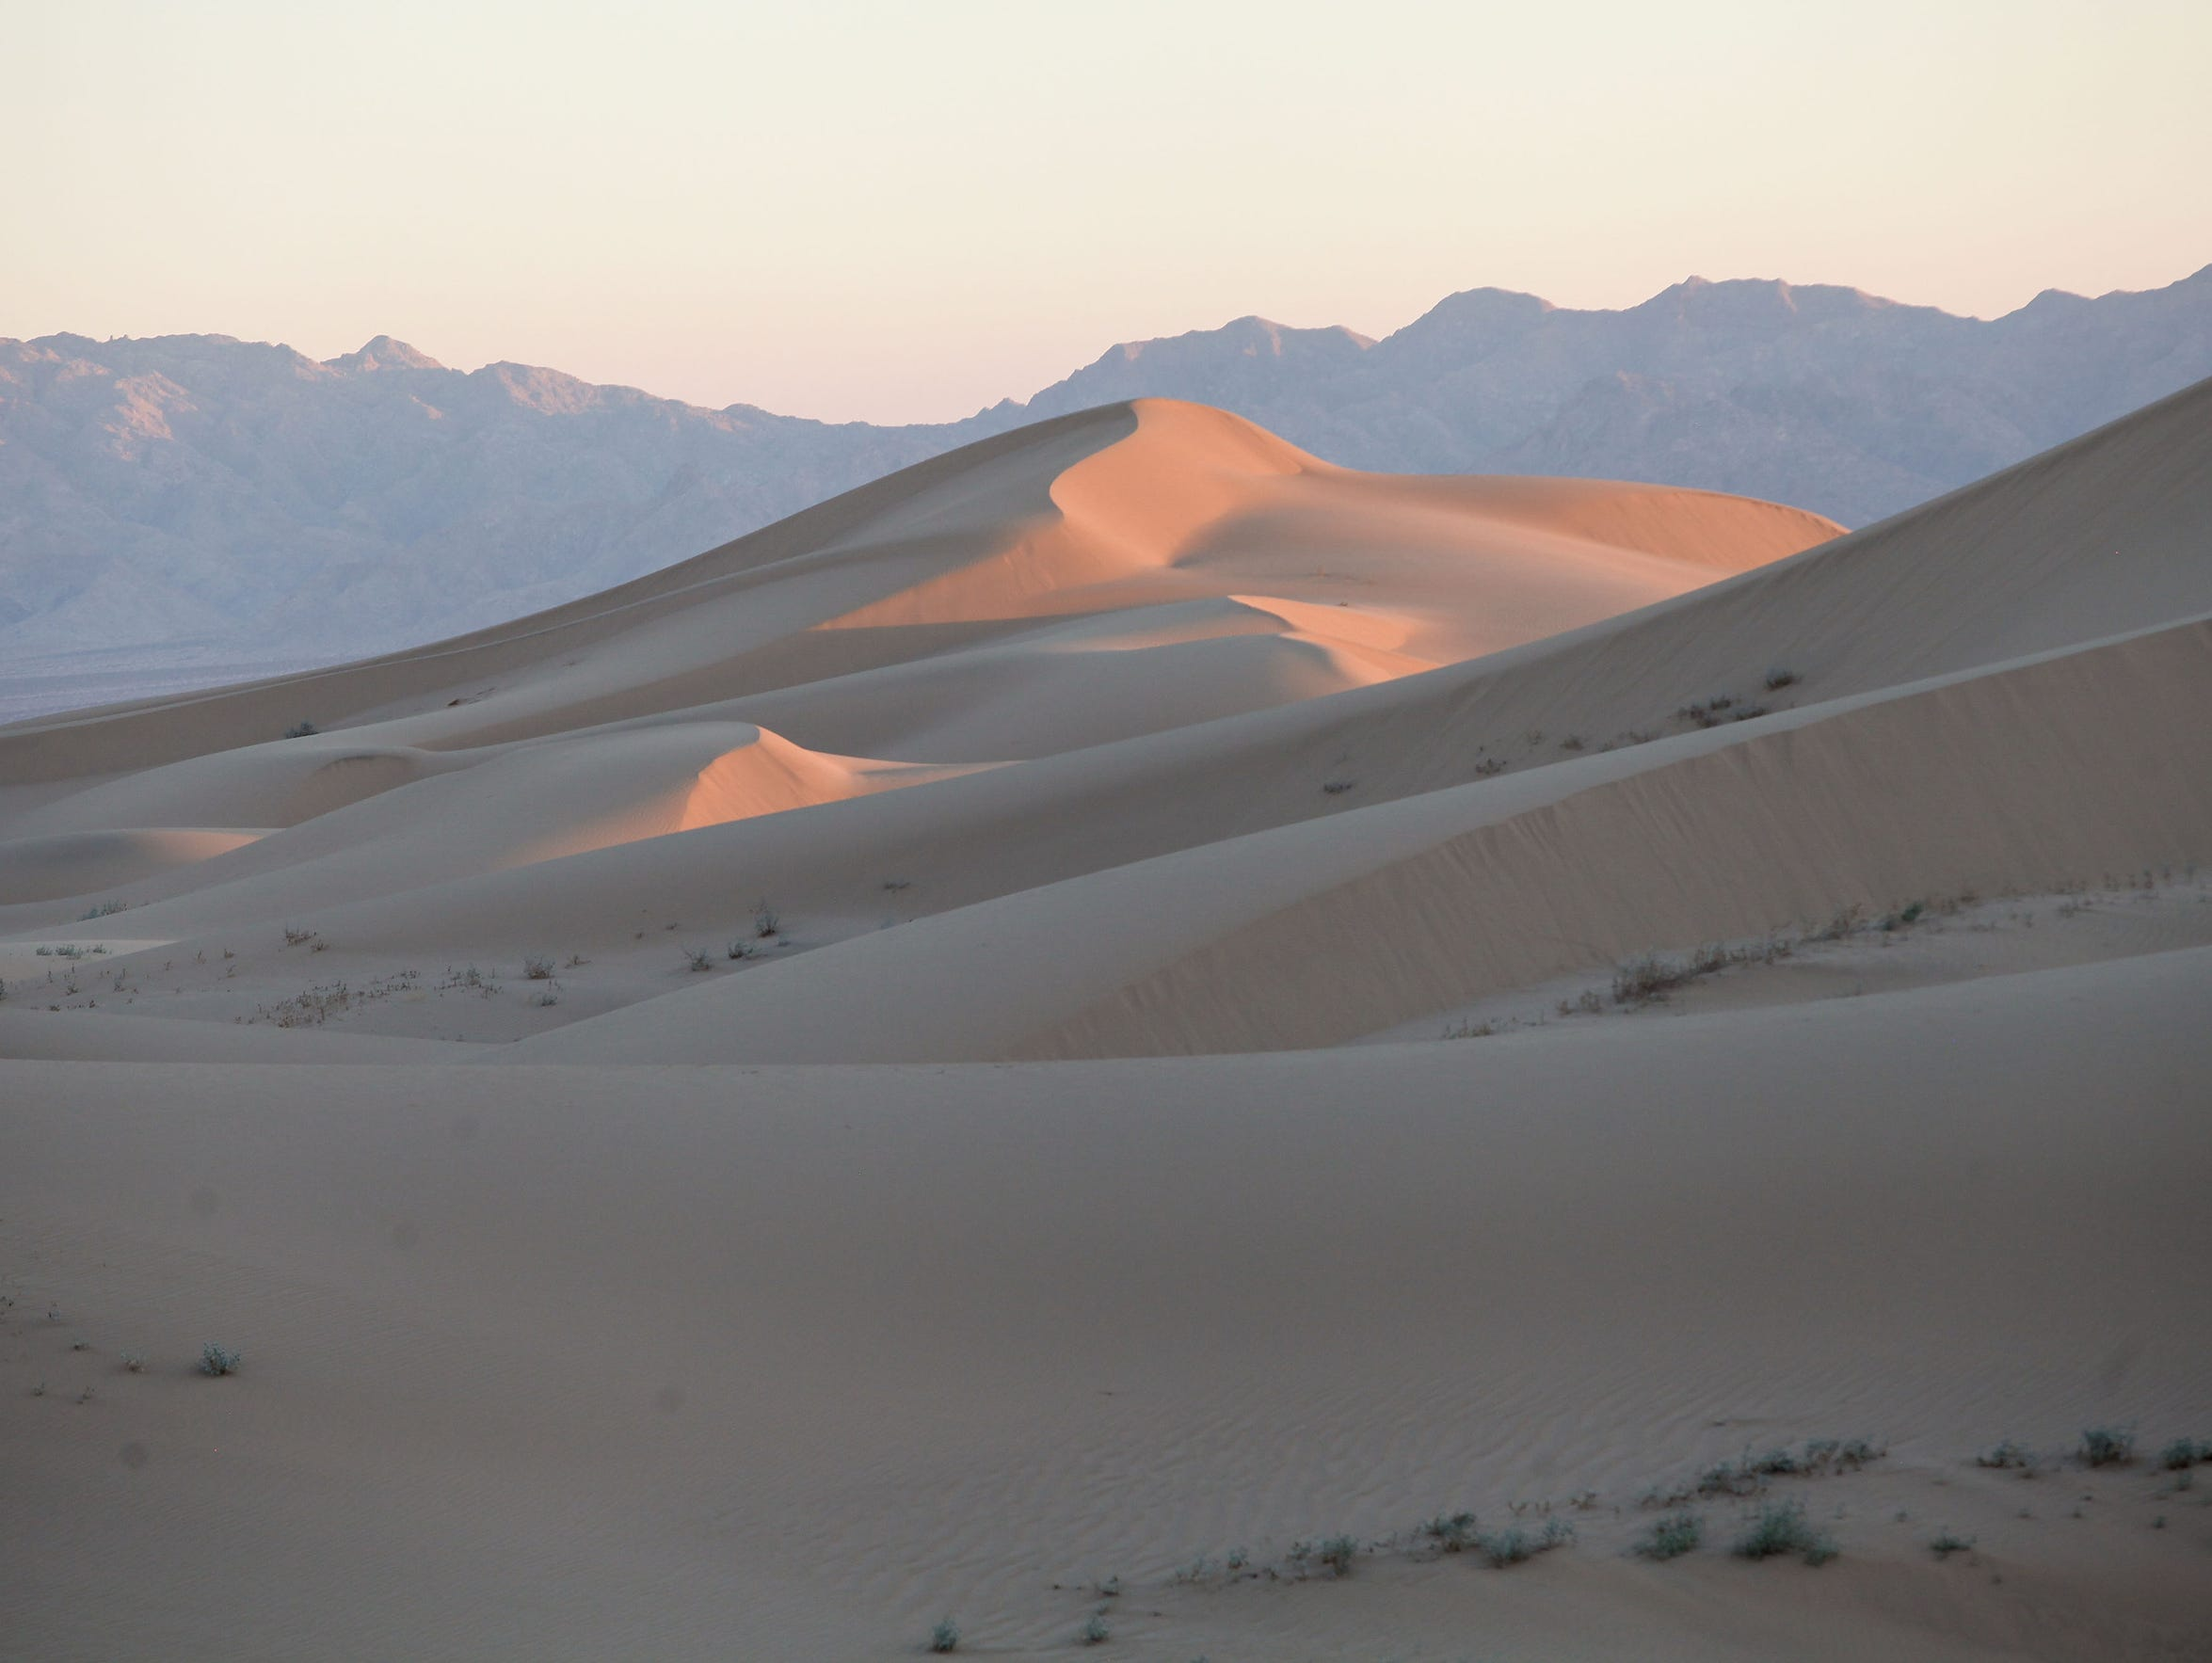 The Cadiz Dunes are located southeast of land where